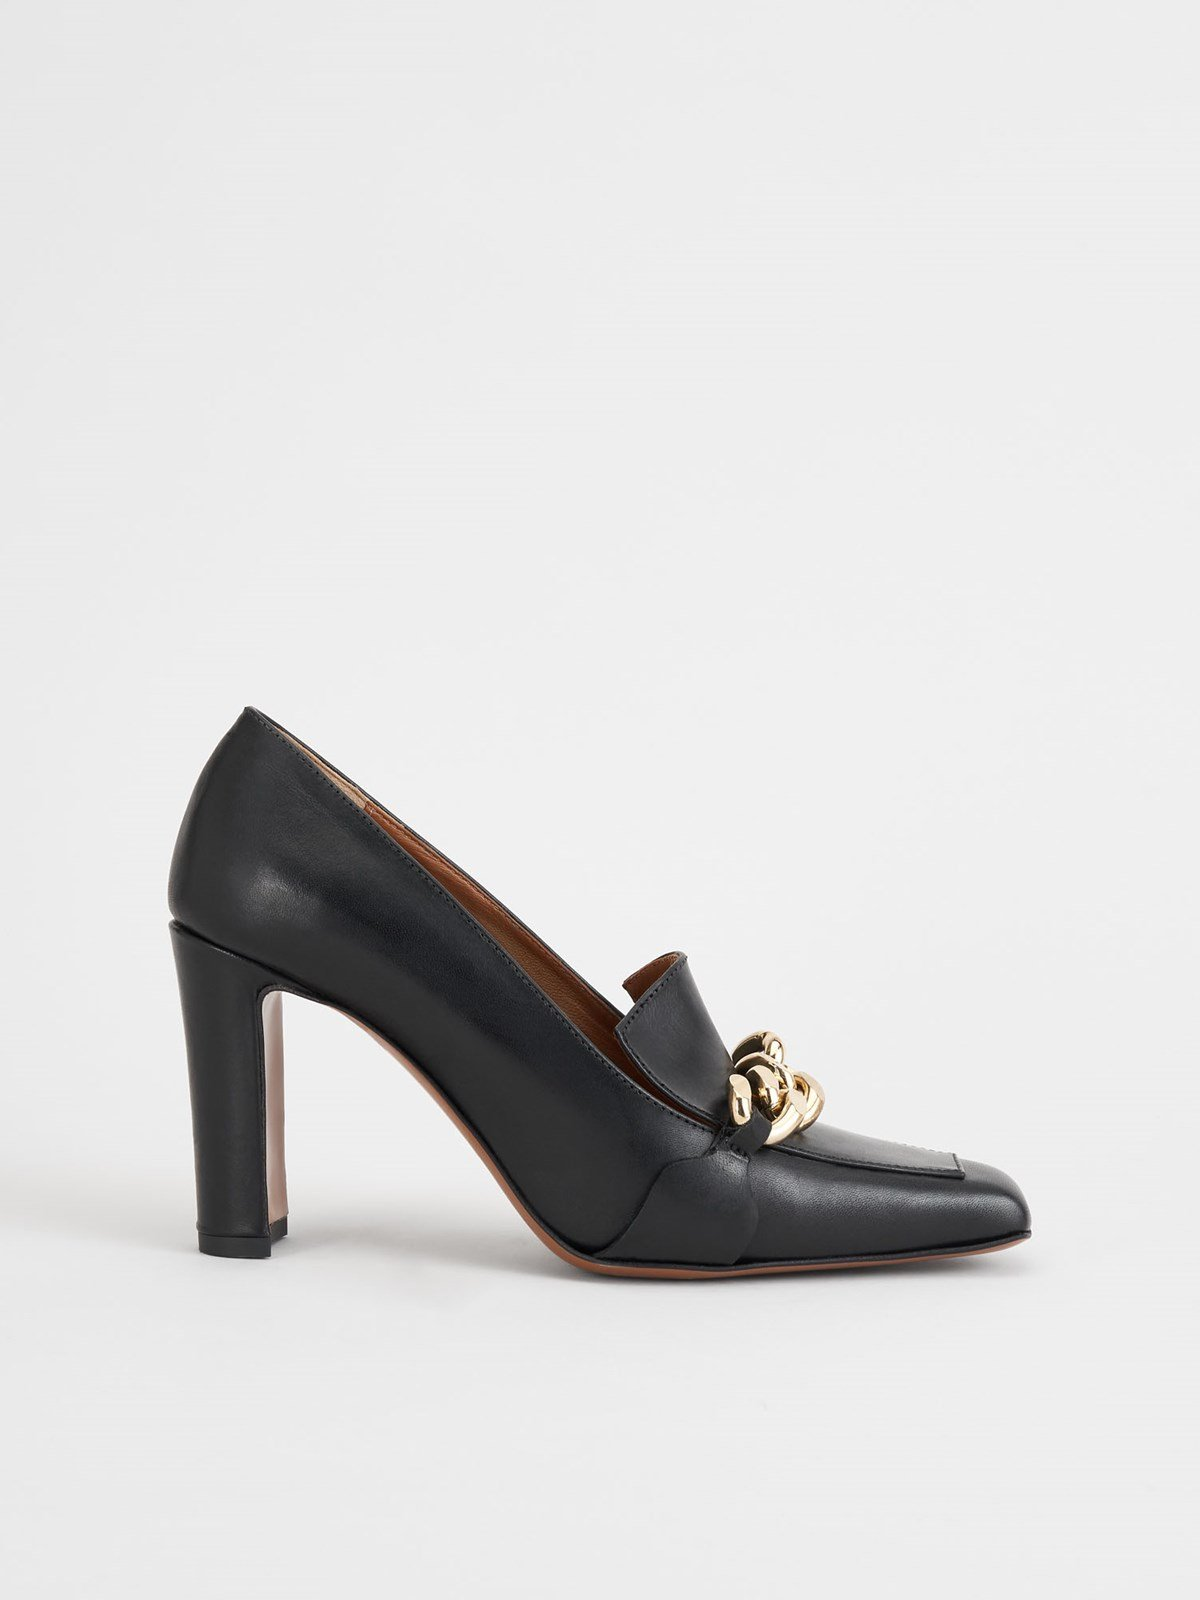 Scorrano Black Pumps